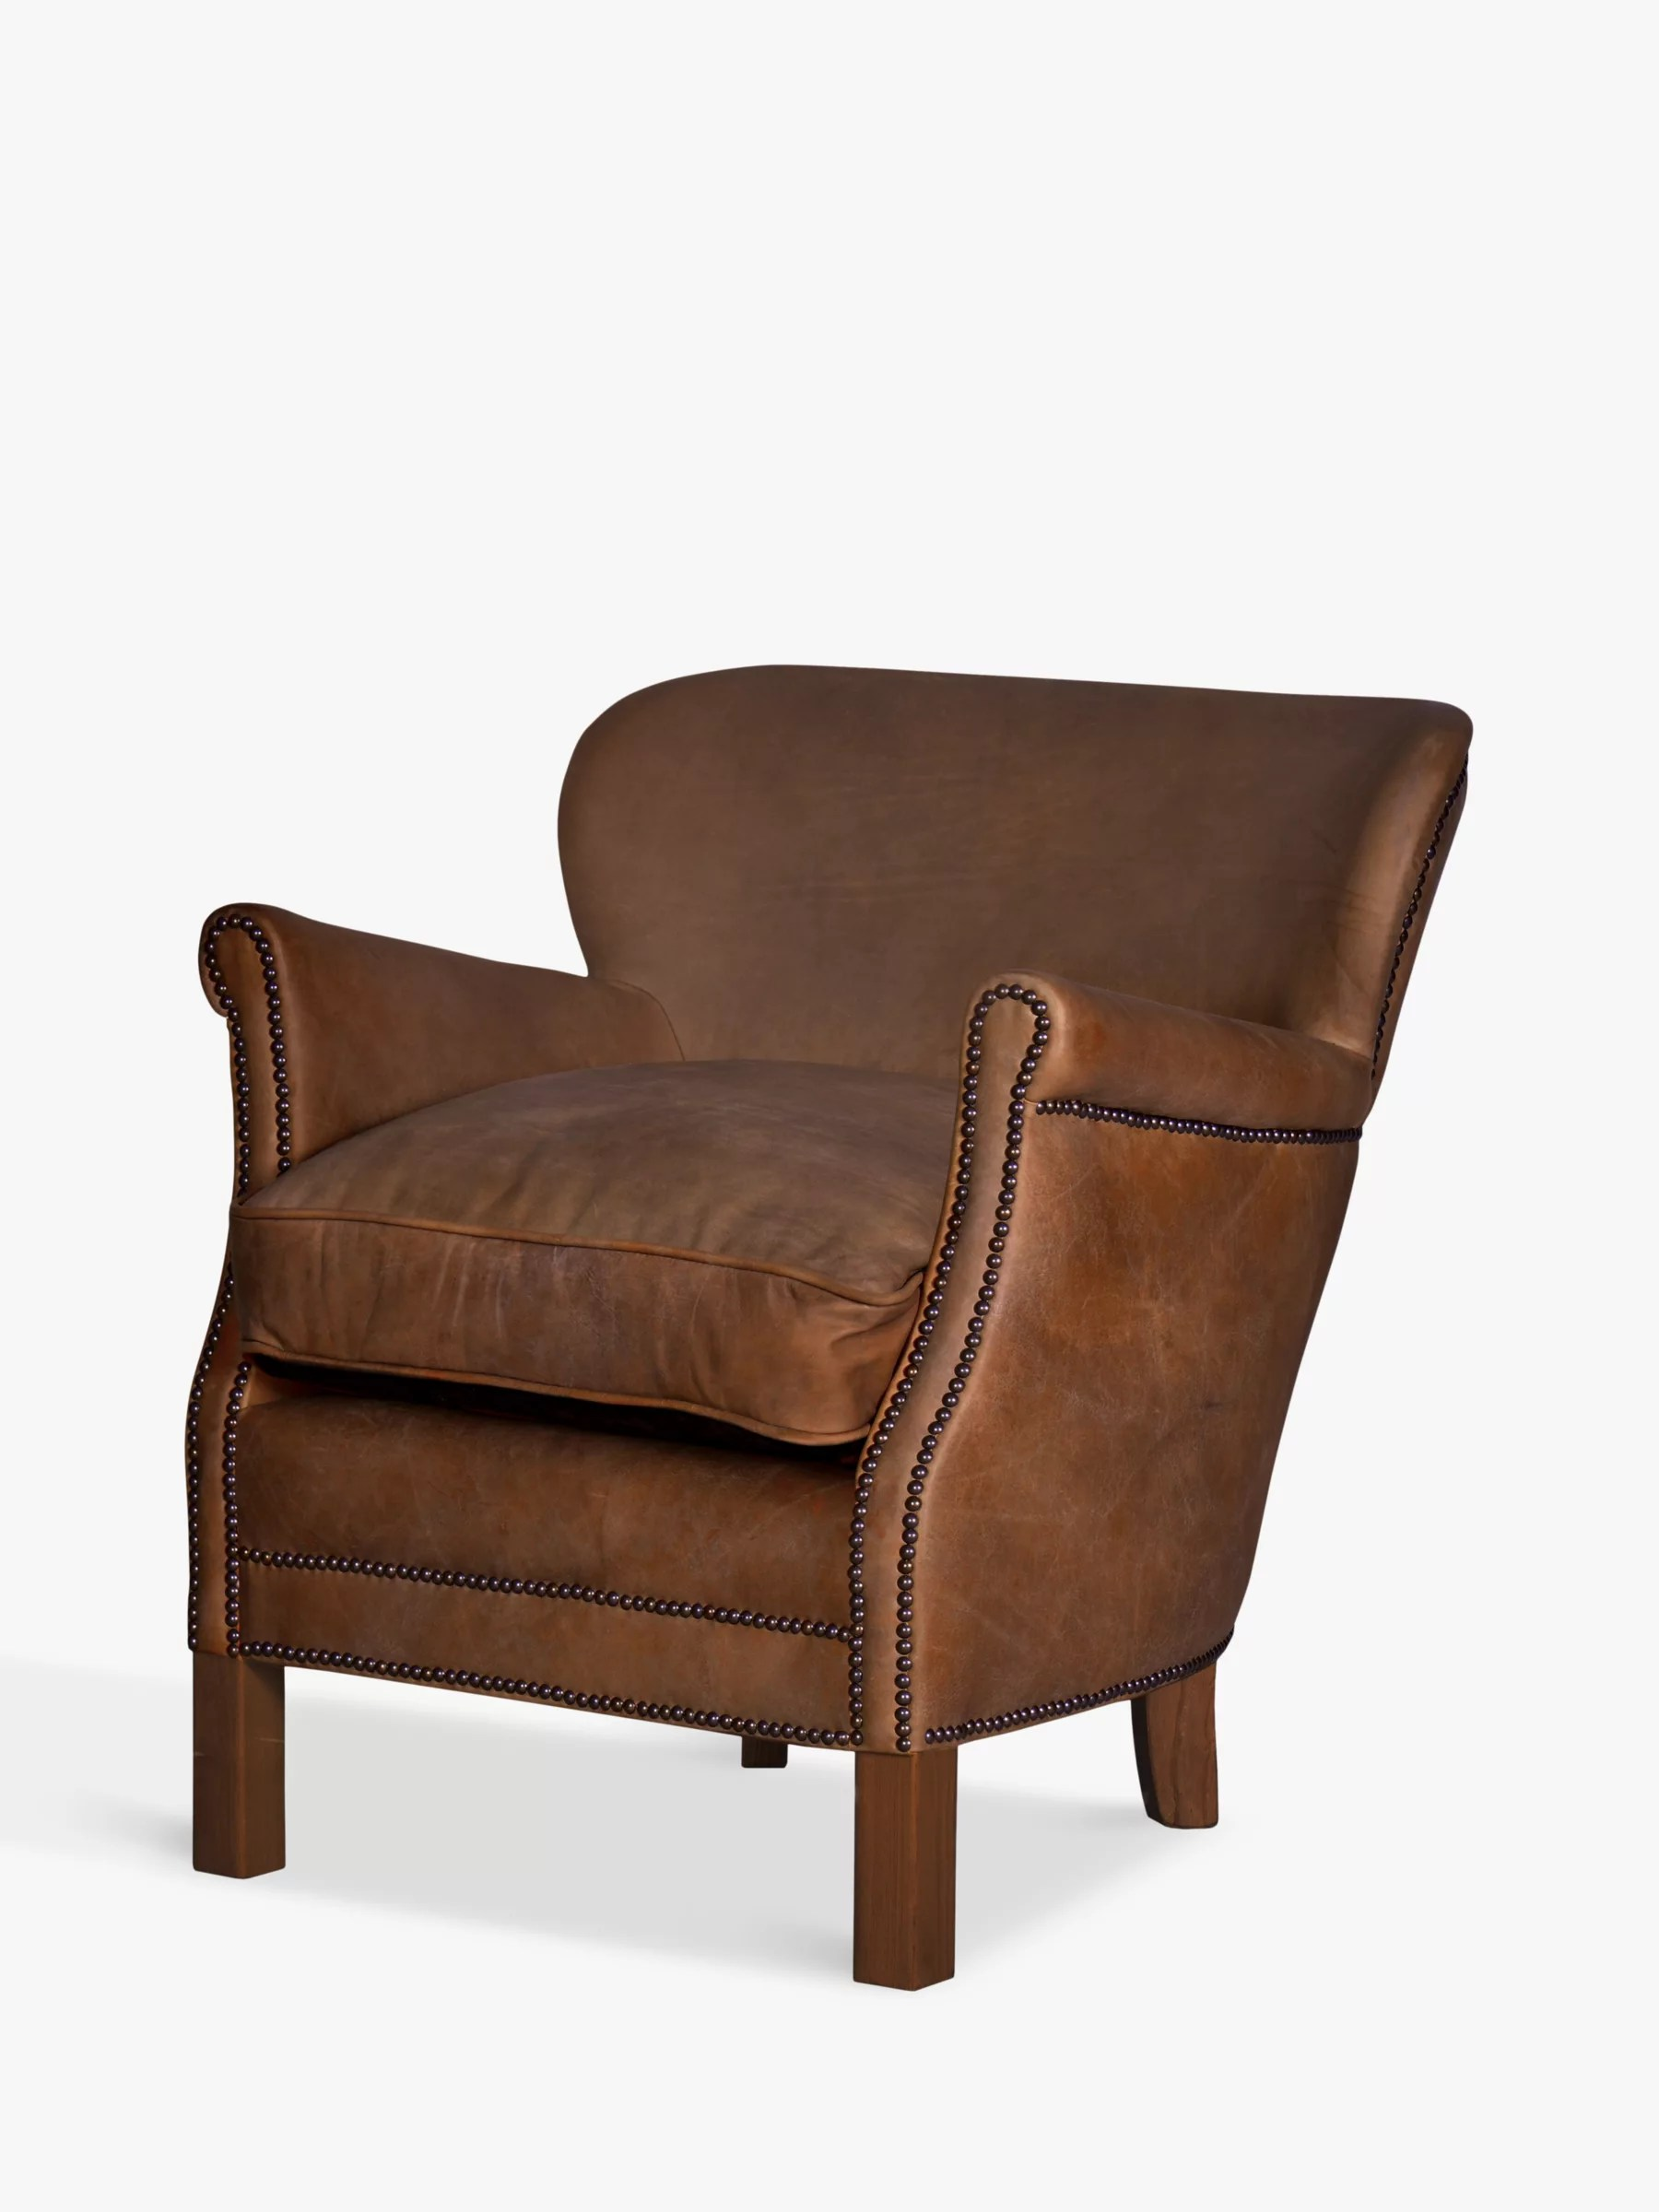 leather sofas glasgow area metal garden furniture sofa halo little professor armchair at john lewis partners buyhalo antique whisky online johnlewis com